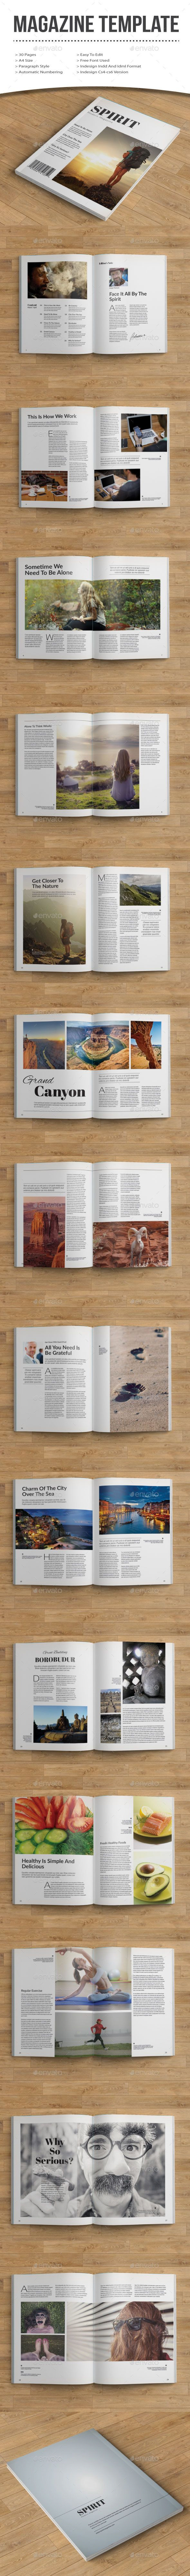 Spirit Magazine Template #design #journal Download: http://graphicriver.net/item/spirit-magazine/10731004?ref=ksioks